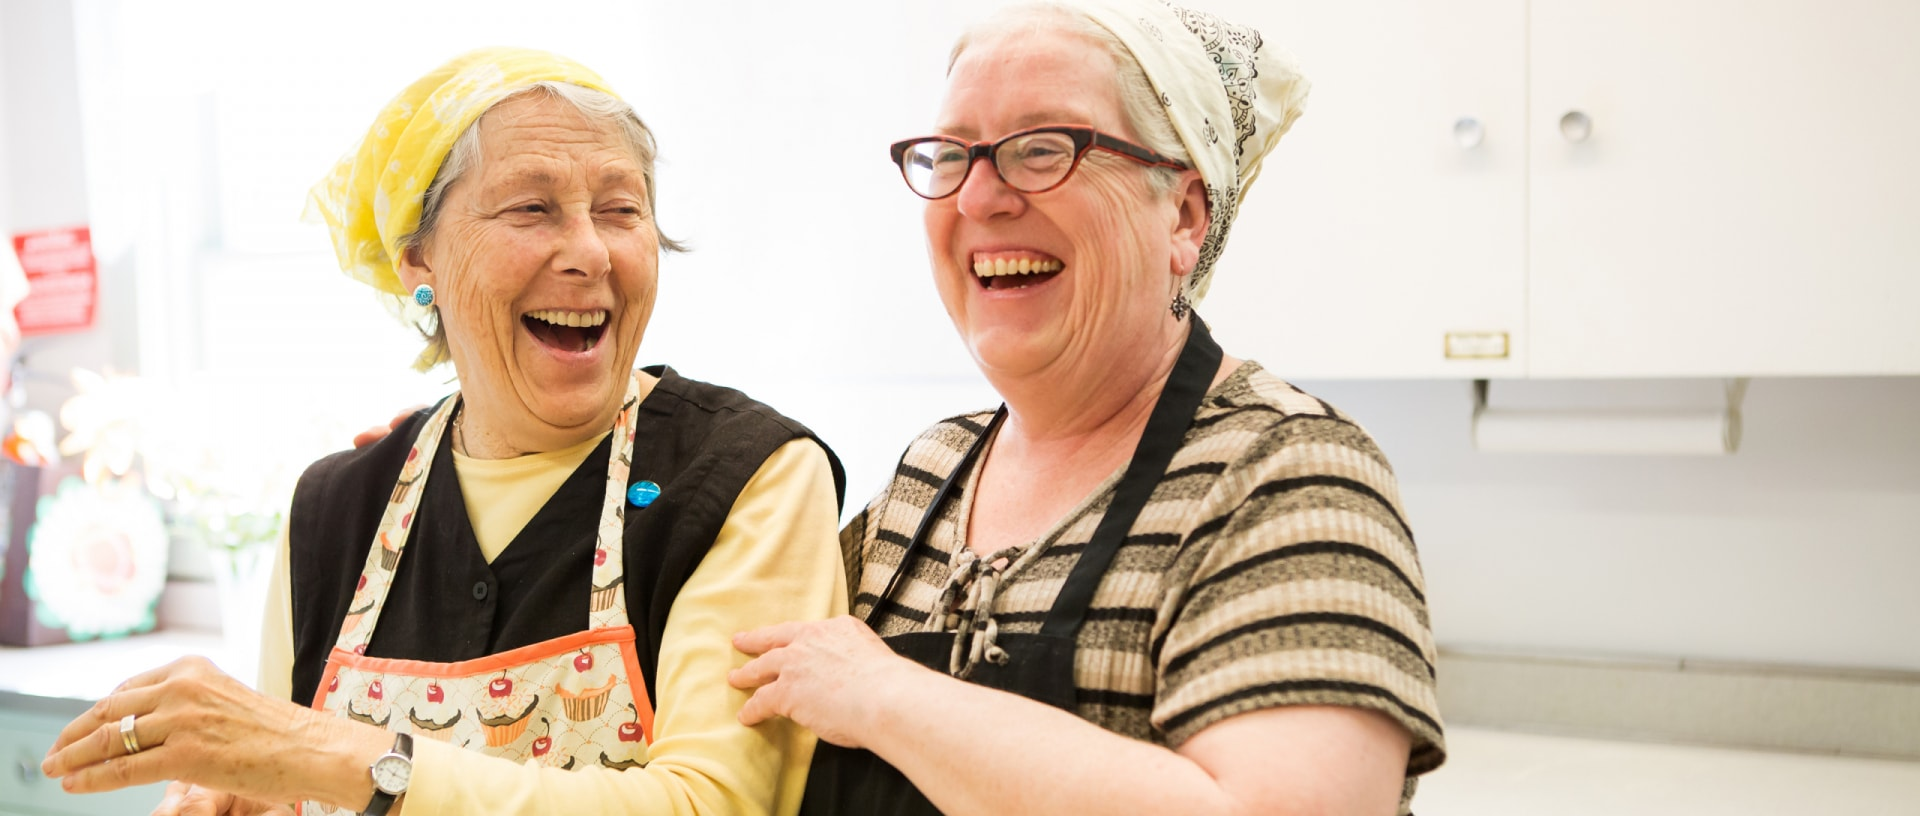 Two women laugh while prepping a meal for Berkshire county's homeless.